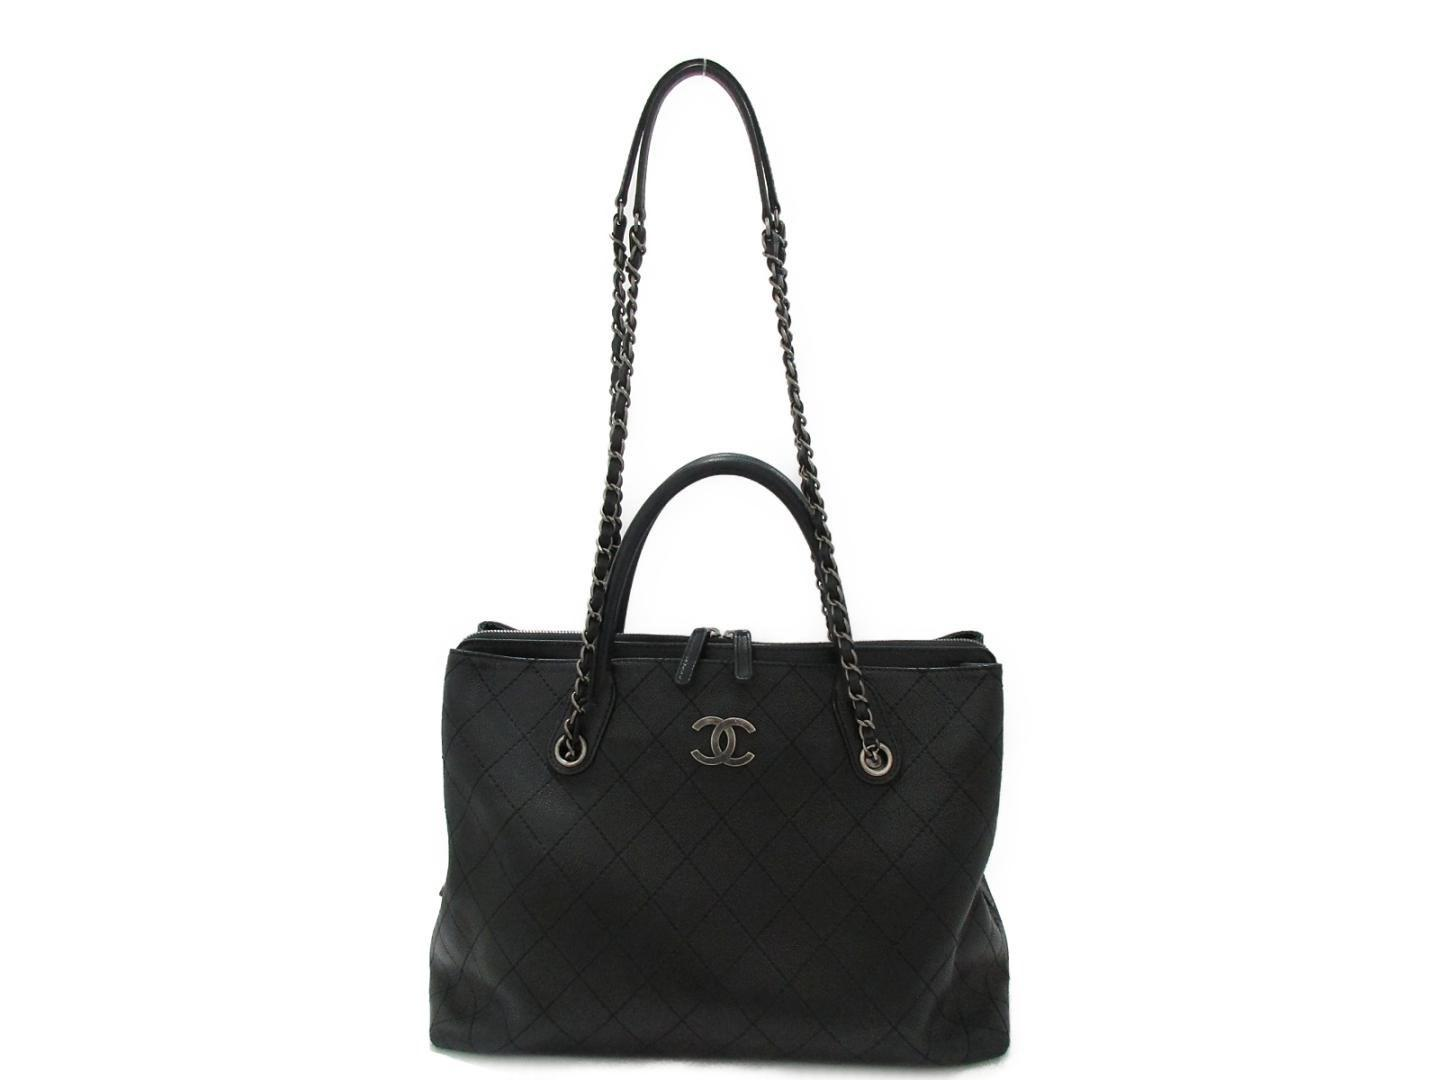 193a1ed84db7 Lyst - Chanel 2way Chain Shoulder Tote Bag Caviar Skin Leather Black ...